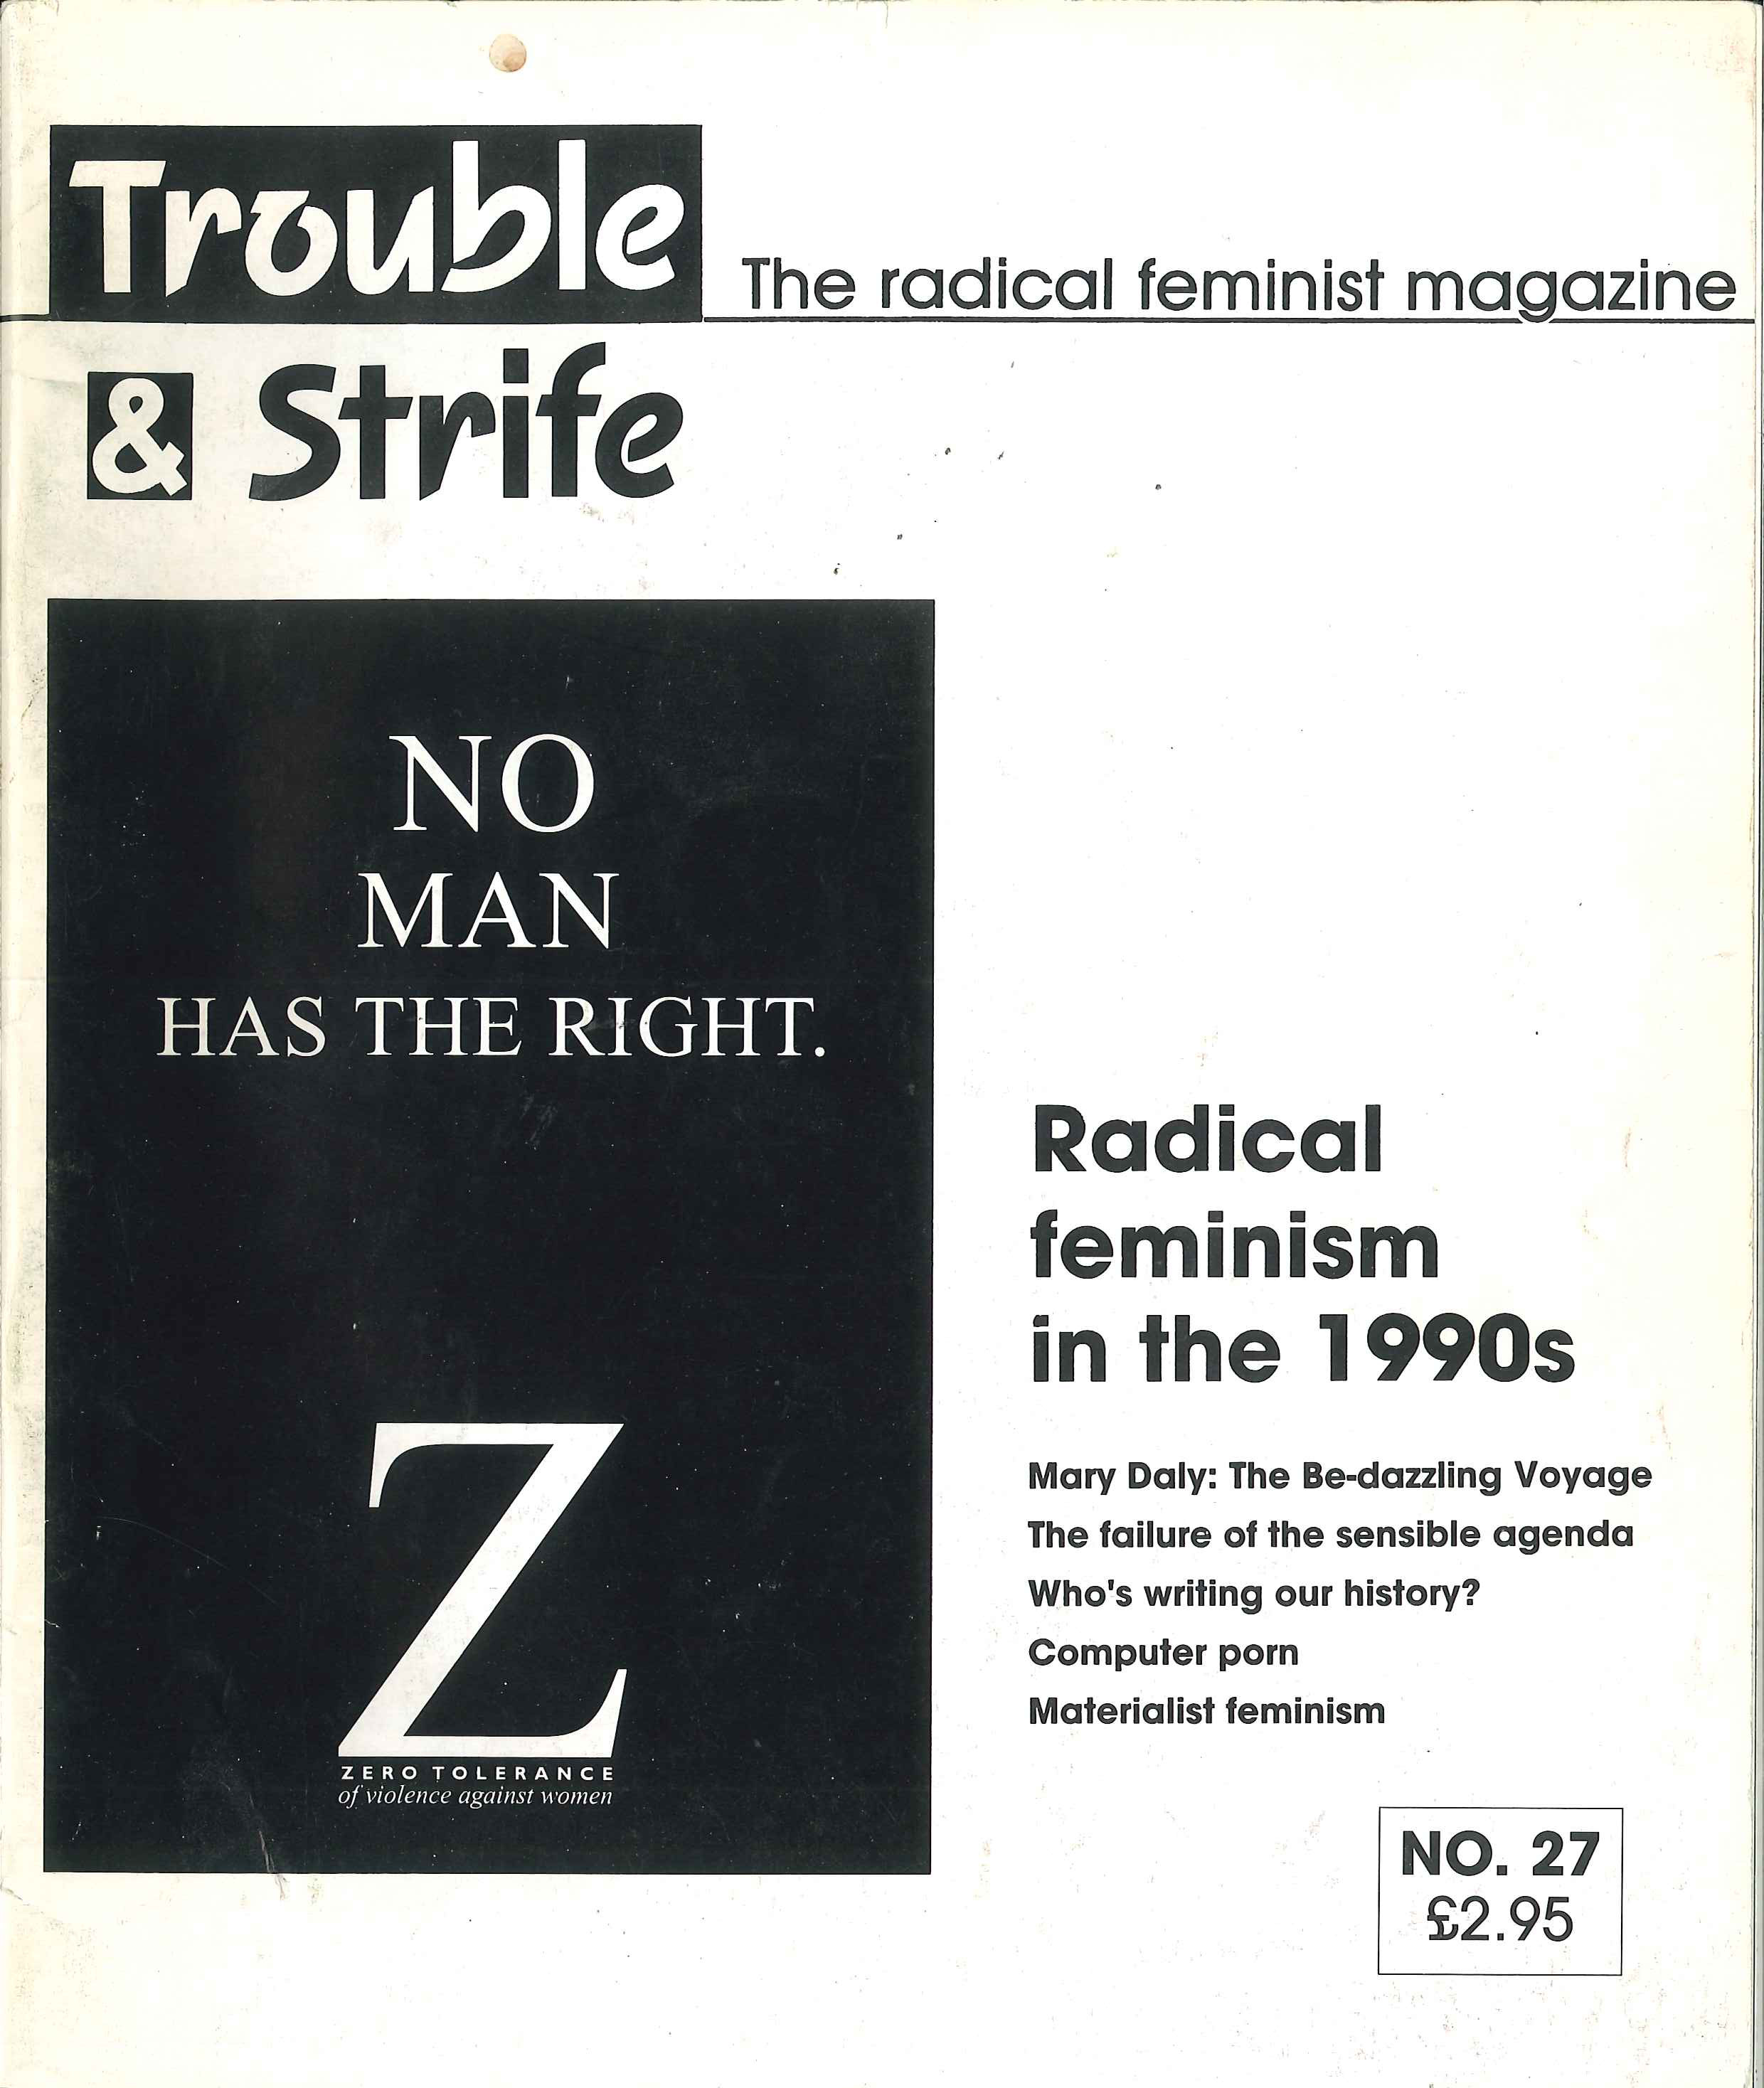 Scan of cover of issue 27